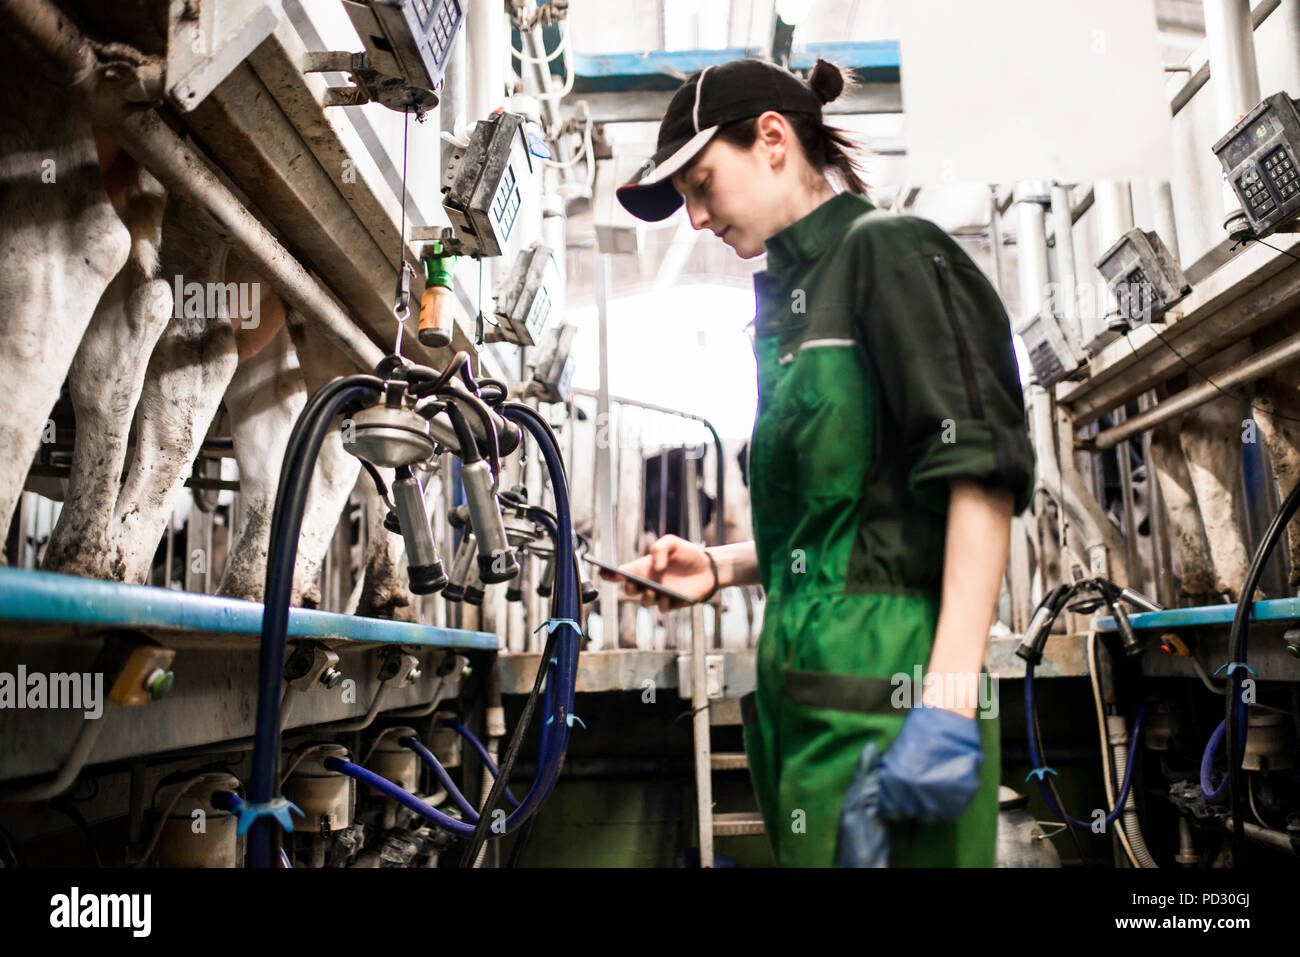 Dairy farm worker texting while working in milking parlour - Stock Image